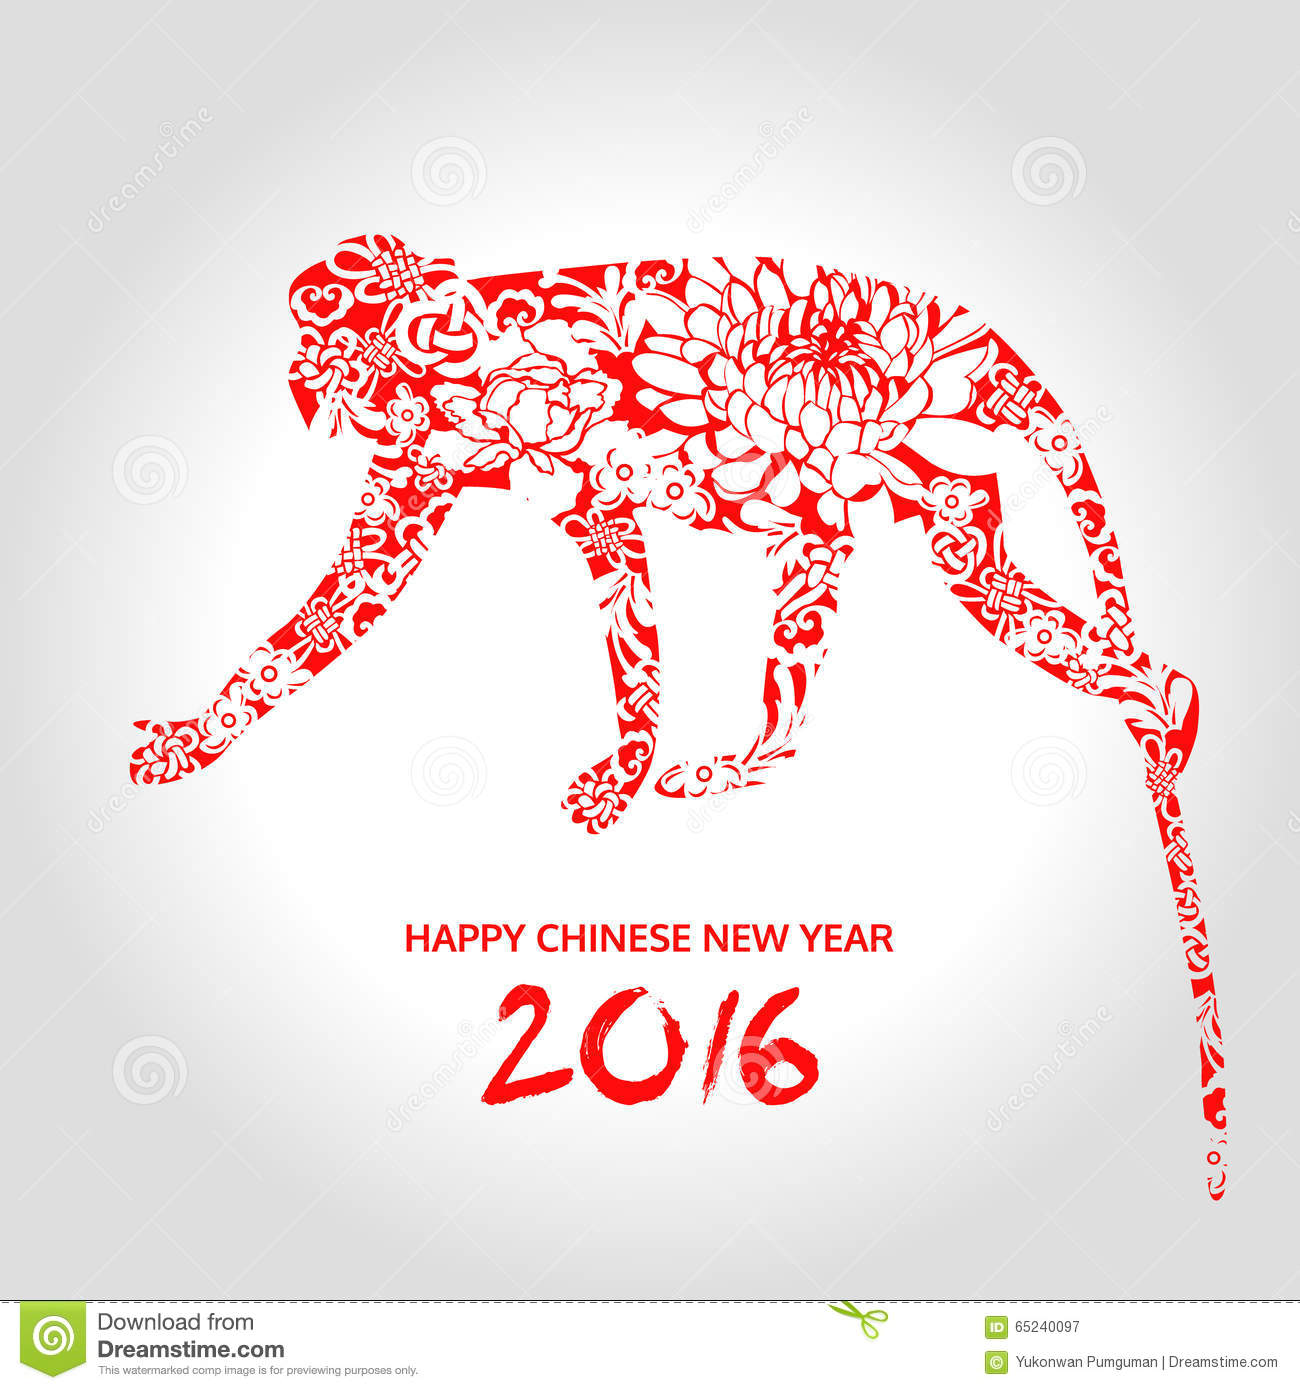 happy chinese new year year of monkey animal vector - Chinese New Year Year Of The Monkey